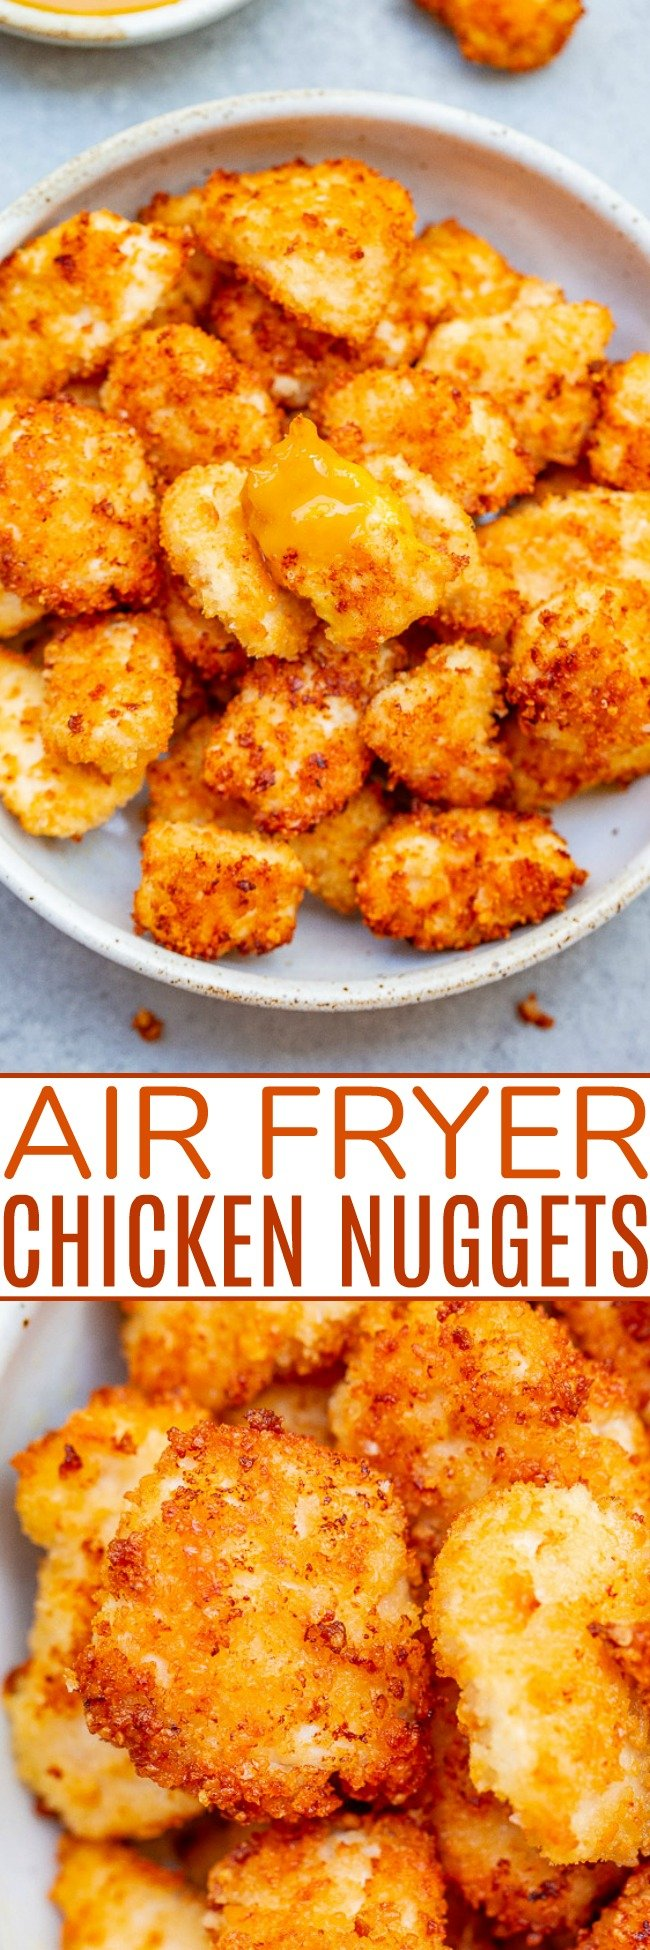 Crispy Air Fryer Chicken Nuggets — These EASY air fryer nuggetsare coated in a mixture of Panko breadcrumbs and grated Parmesan, which makes them EXTRA flavorful and SO CRISPY!! Dip them in this 30-second homemade honey mustard sauce for a guaranteed family FAVORITE!!